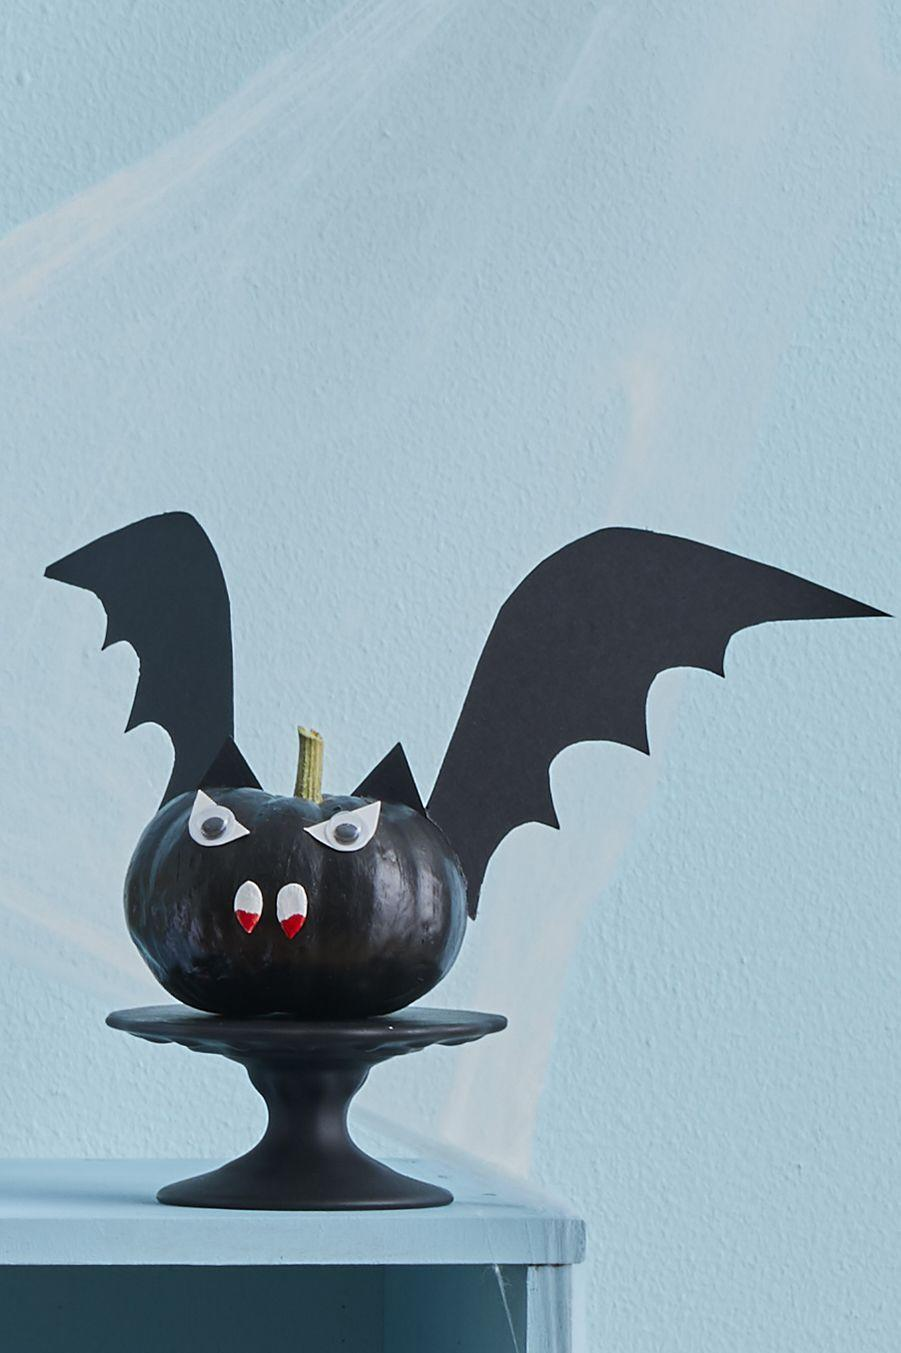 """<p>Paint any mini pumpkin all black, use pumpkin seeds for teeth with a hint of blood, of course, cut his ears and wings our of card stock and glue googly eyes on top of eye-shaped paper cutouts. <strong><br></strong></p><p><a class=""""link rapid-noclick-resp"""" href=""""https://www.amazon.com/TOAOB-Assorted-Adhesive-Scrapbooking-Accessories/dp/B01HEDV9SC/?tag=syn-yahoo-20&ascsubtag=%5Bartid%7C10070.g.331%5Bsrc%7Cyahoo-us"""" rel=""""nofollow noopener"""" target=""""_blank"""" data-ylk=""""slk:SHOP GOOGLY EYES"""">SHOP GOOGLY EYES</a> </p>"""